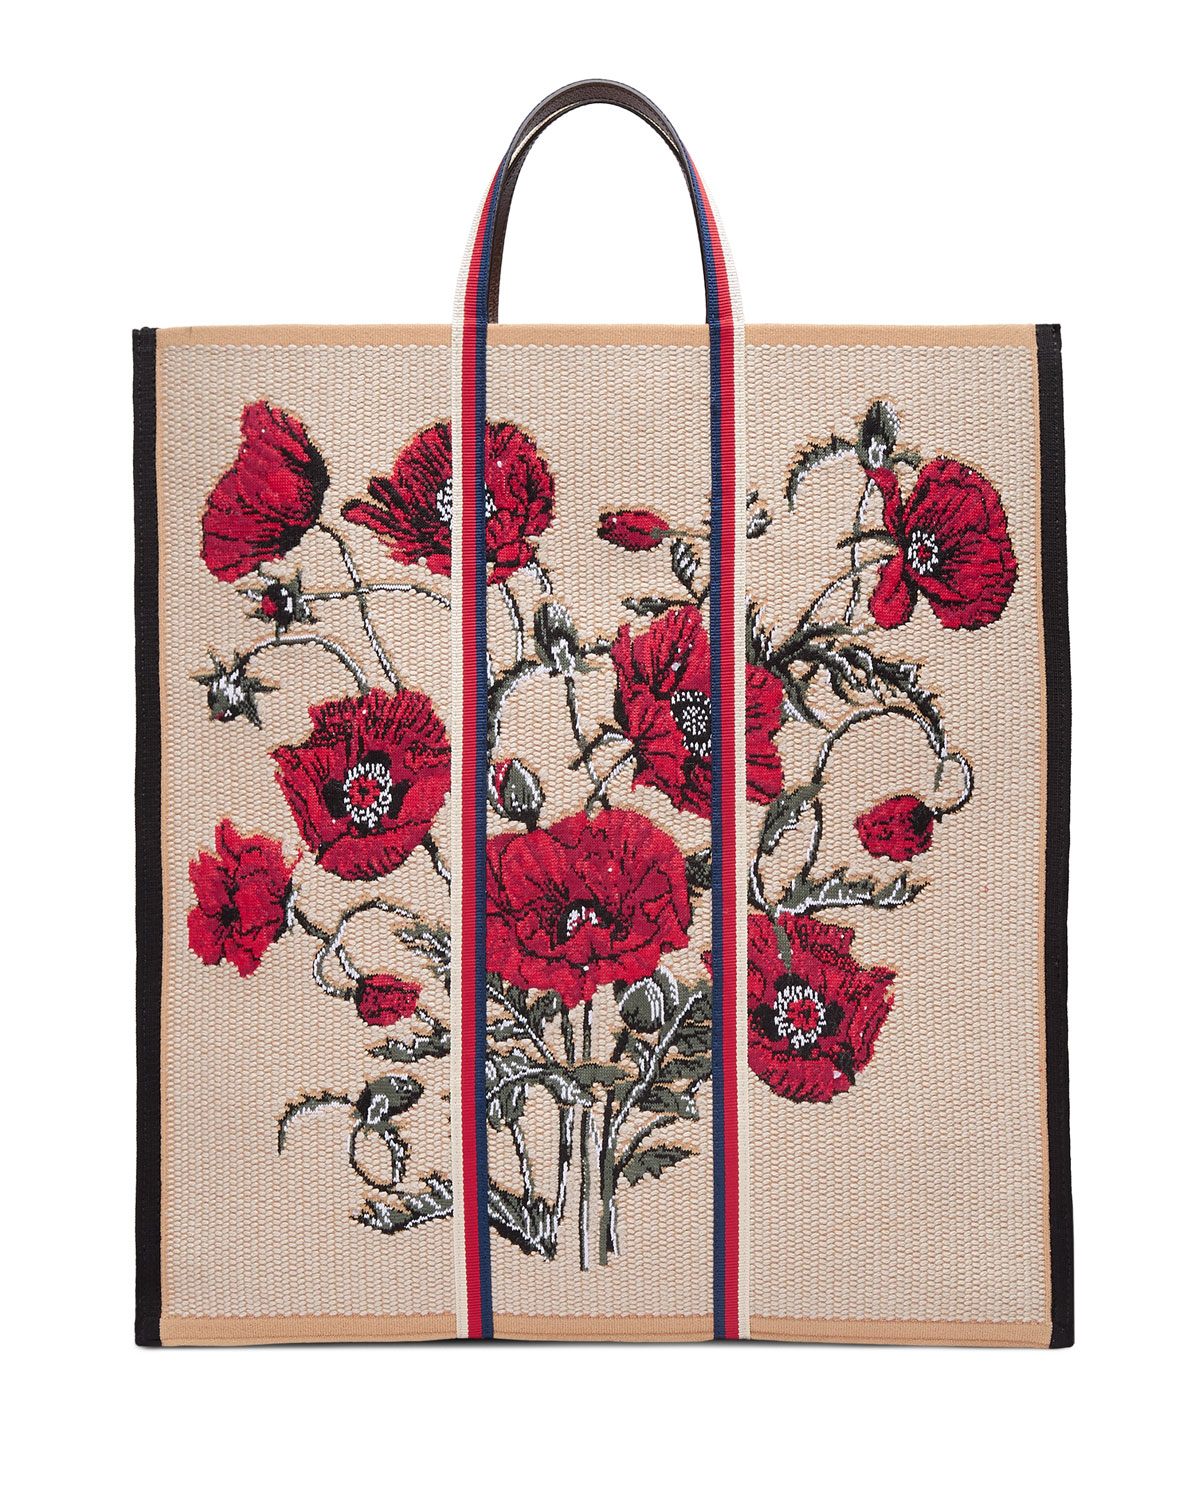 Floral-Embroidered Woven Tote Bag